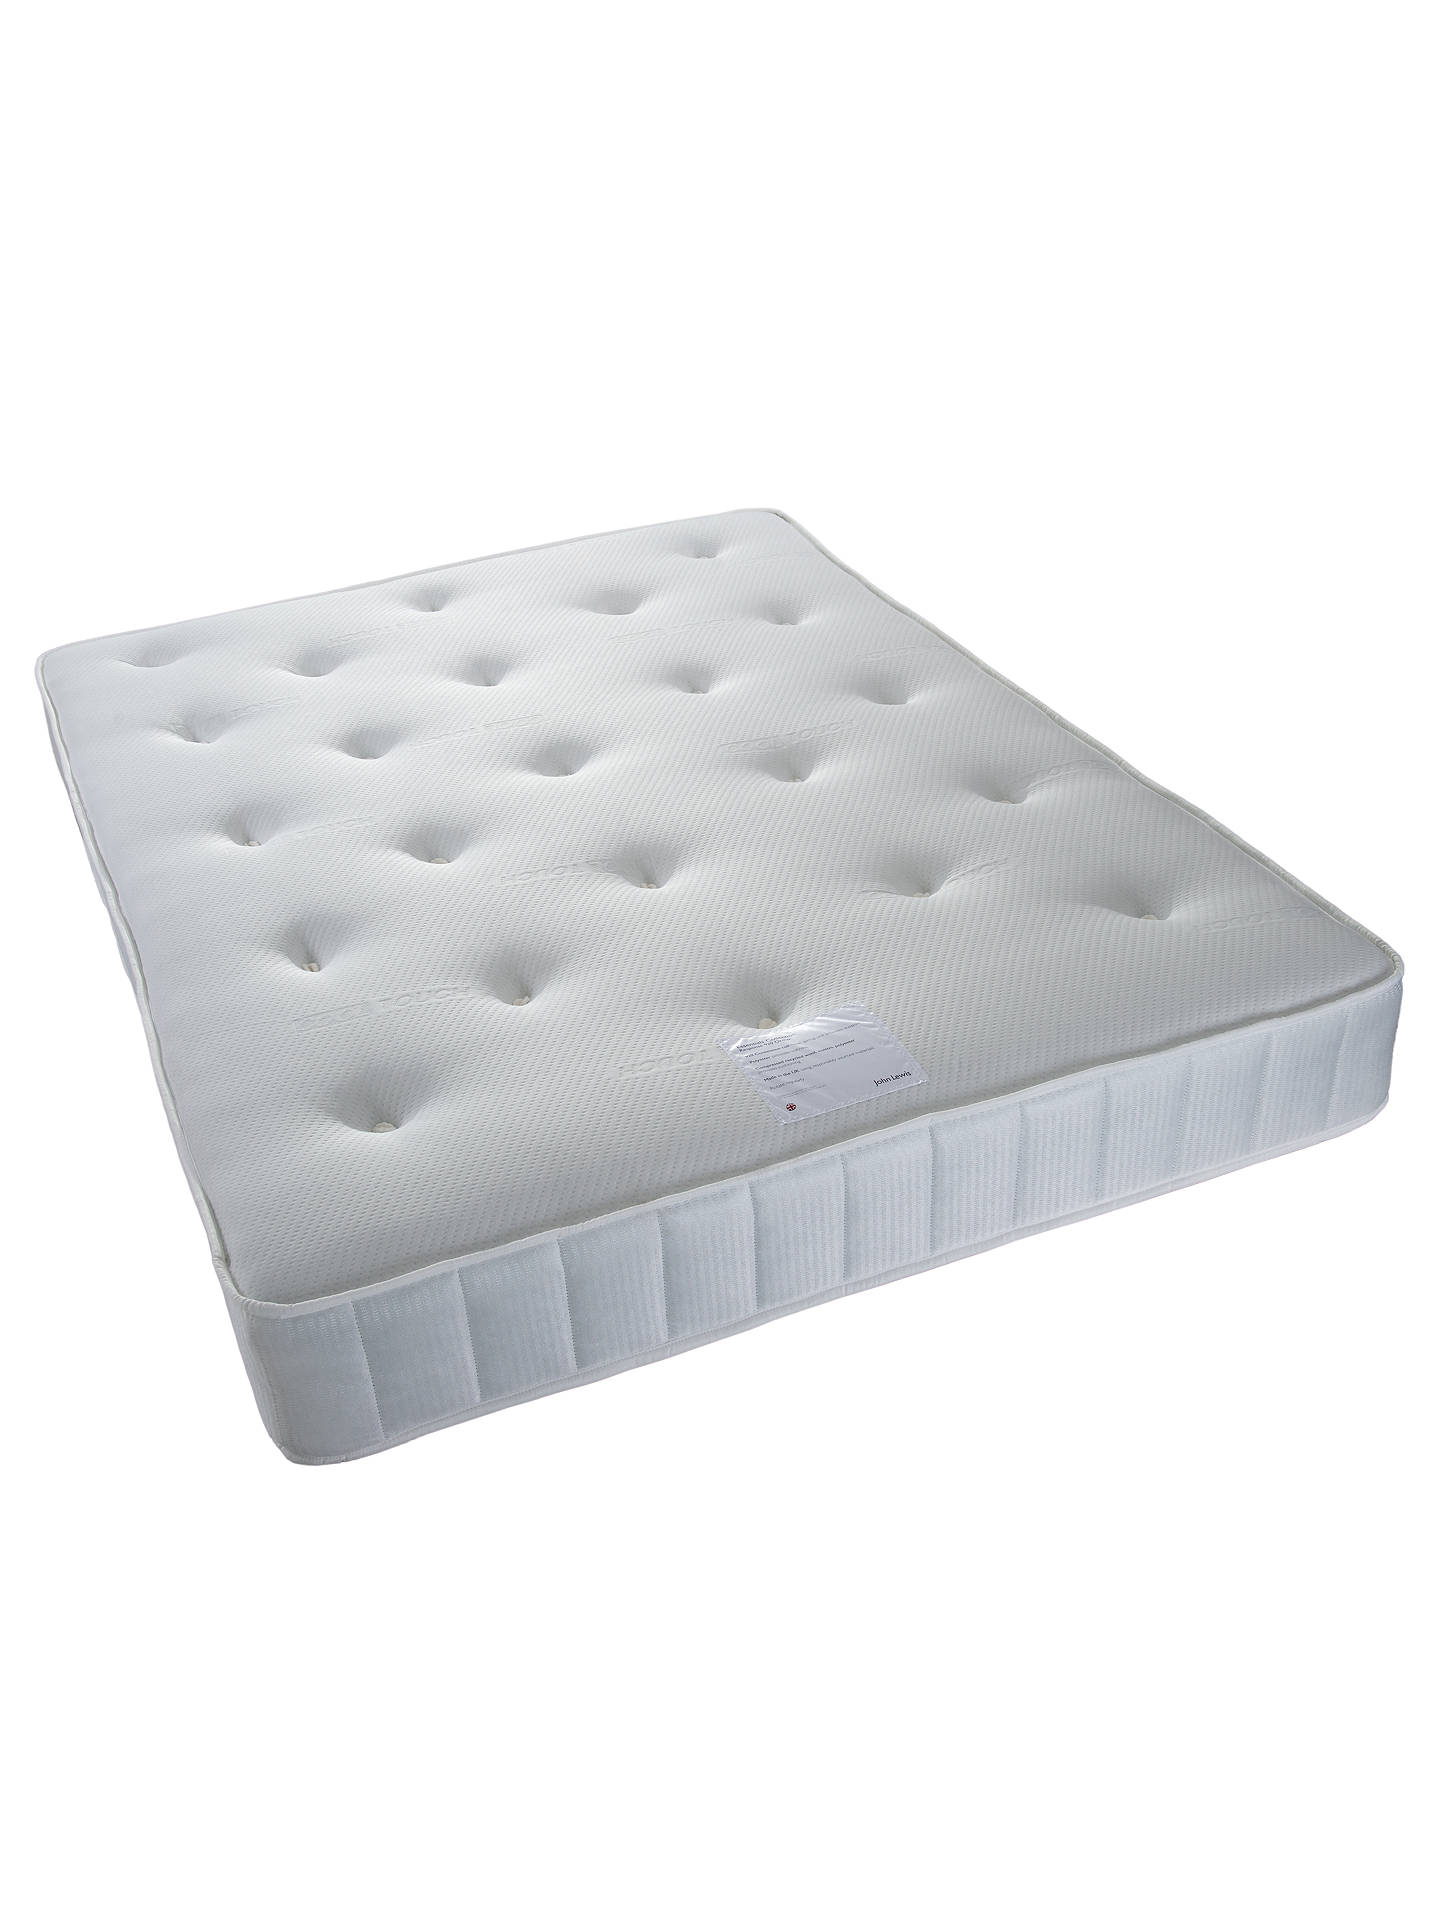 Buy John Lewis & Partners Essentials Collection Response 920 Ortho Open Spring Mattress, Firm, King Size Online at johnlewis.com